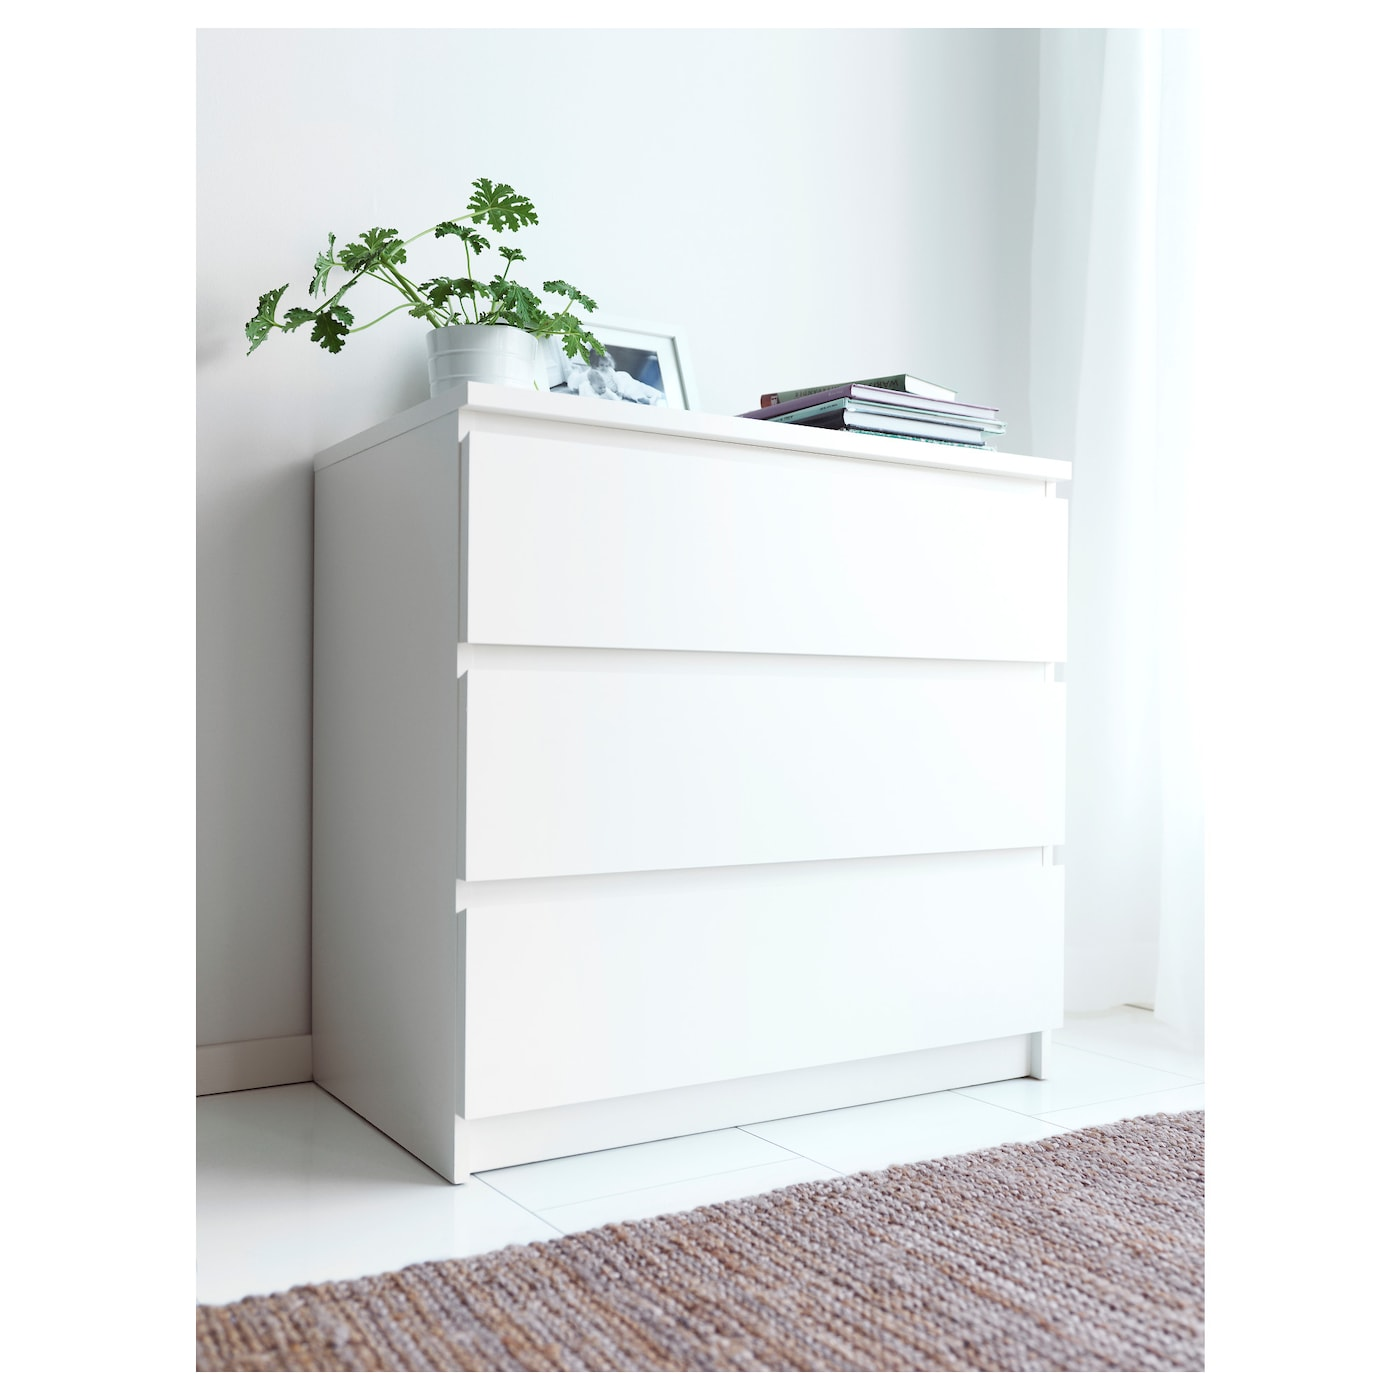 IKEA MALM chest of 3 drawers Smooth running drawers with pull out stop. MALM Chest of 3 drawers White 80x78 cm   IKEA